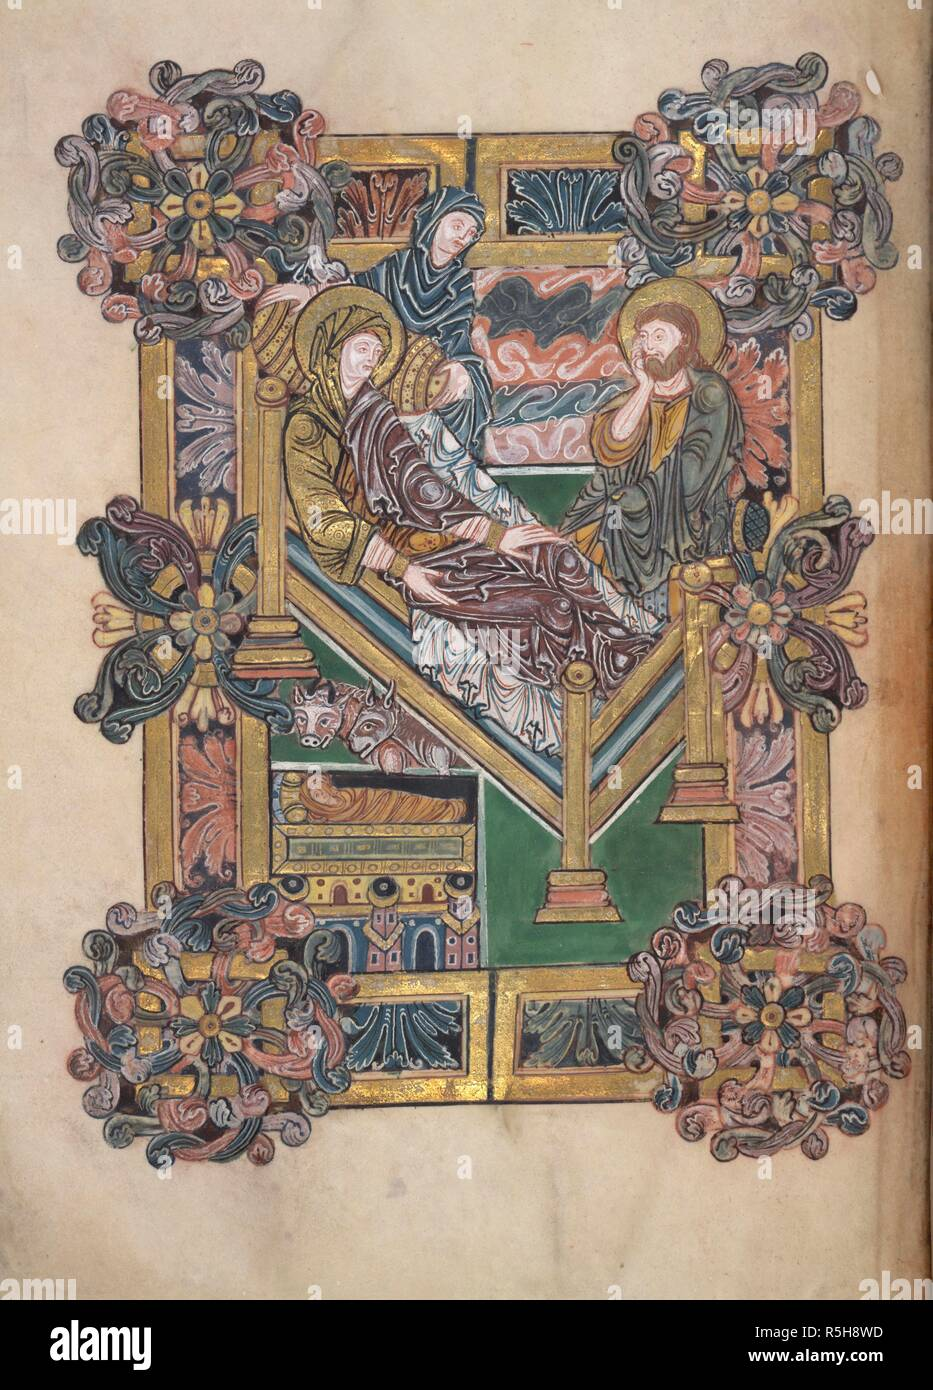 The Nativity. Benedictional of St. Aethelwold. Winchester; 971-984. (Whole folio) Preface to the first blessing for Christmas Day; the Nativity. The Virgin is reclining on a tilted bed, with Joseph seated at the foot. Unusual details include the crib, which is shown on the nearside of the bed, the pillow under Christ's head, and the midwife arranging the cushion under the Virgin's head.The scene is surrounded by a frame of 'Winchester' acanthus, with round bosses at the corners  Image taken from Benedictional of St. Aethelwold.  Originally published/produced in Winchester; 971-984. . Source: A - Stock Image